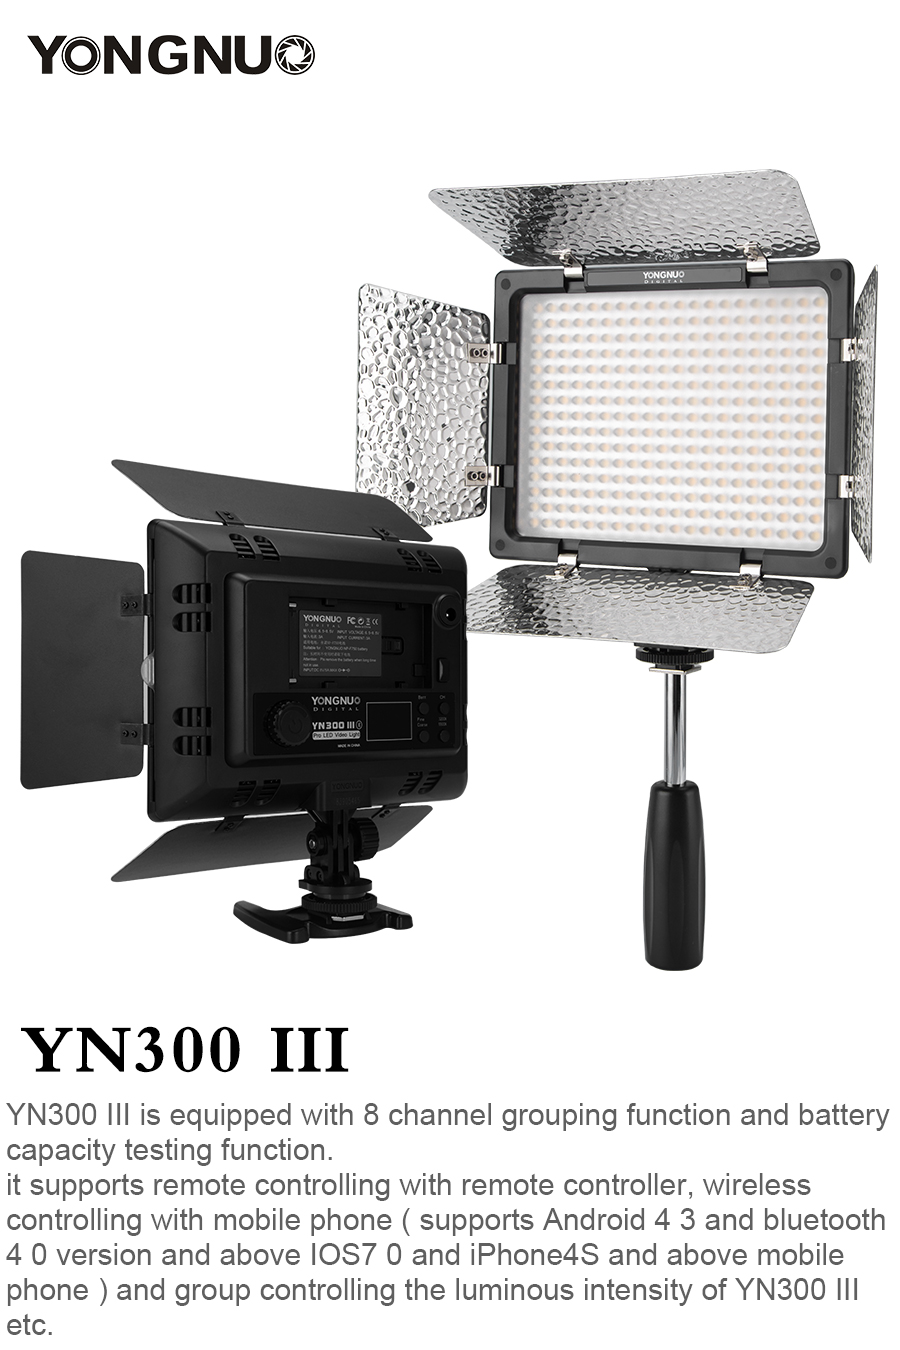 H69348a127c974506ac6813b1ee775e6b5 Yongnuo YN300 III YN300III 3200k-5500K CRI95 Camera Photo LED Video Light Optional with AC Power Adapter + NP770 Battery KIT